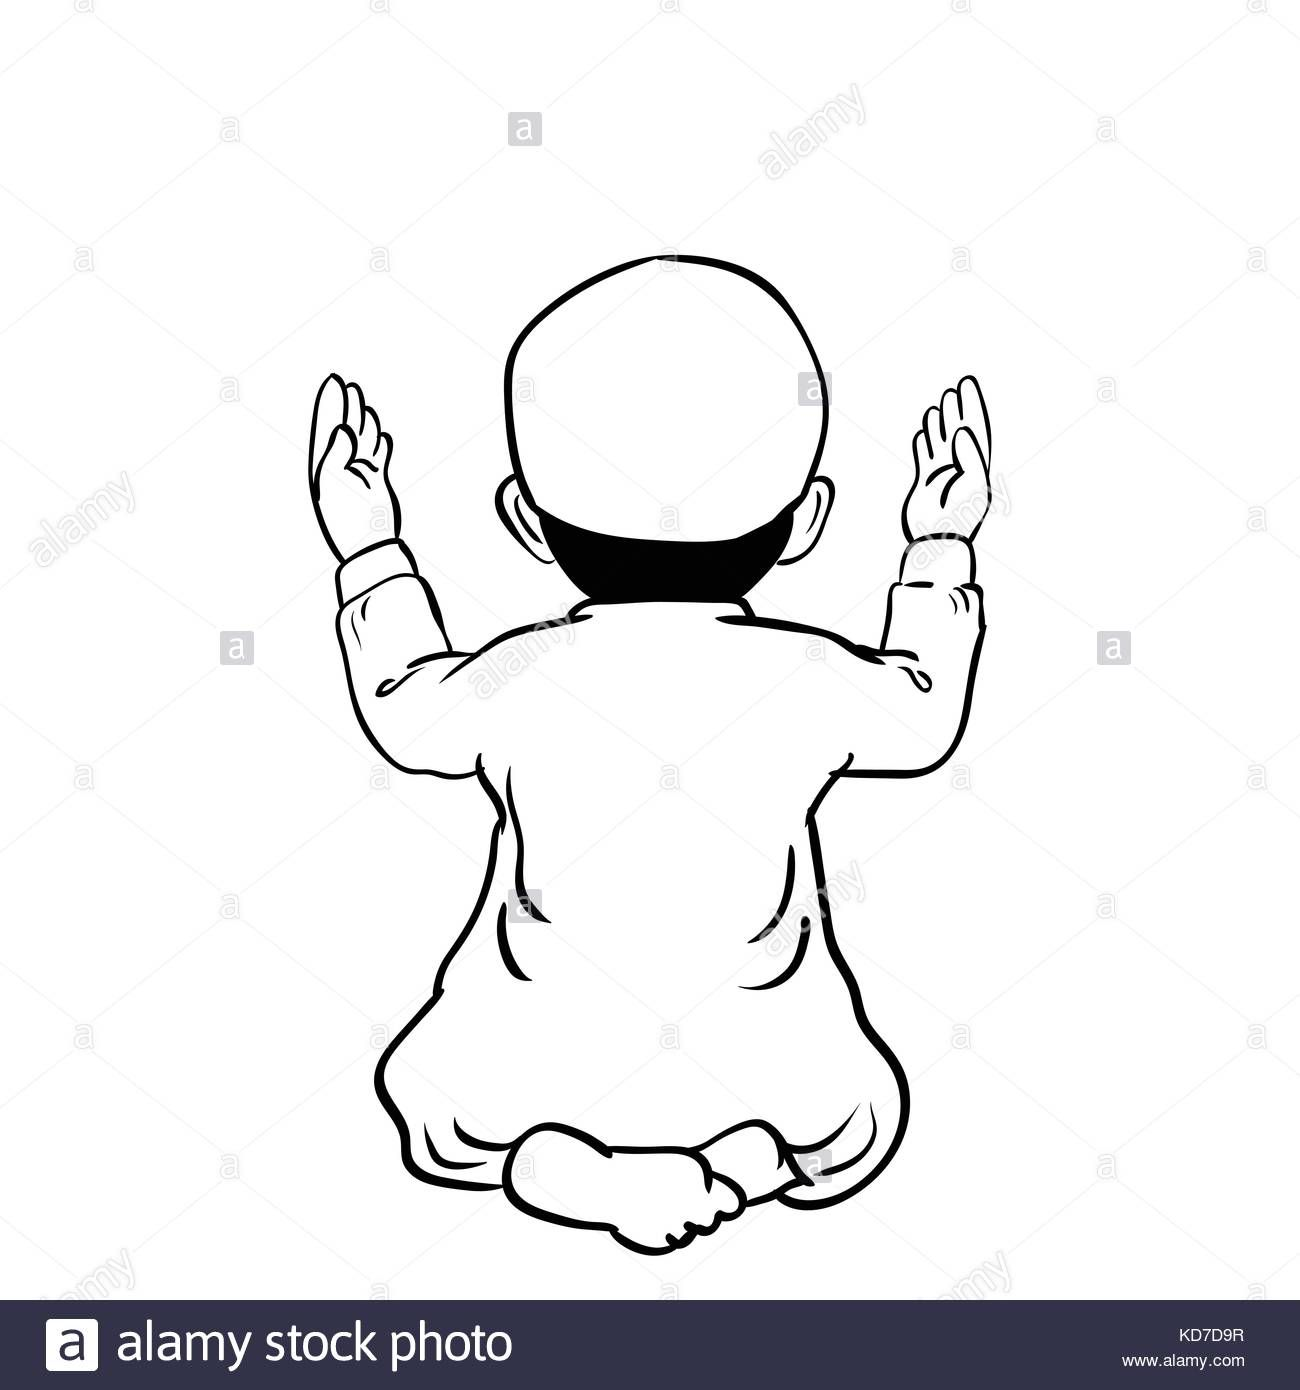 Download This Stock Vector Hand Drawn Muslim Boy Have A Pray Time With Hands Up In The Air Dua Pose With B How To Draw Hands Cartoon Illustration Anime Muslim